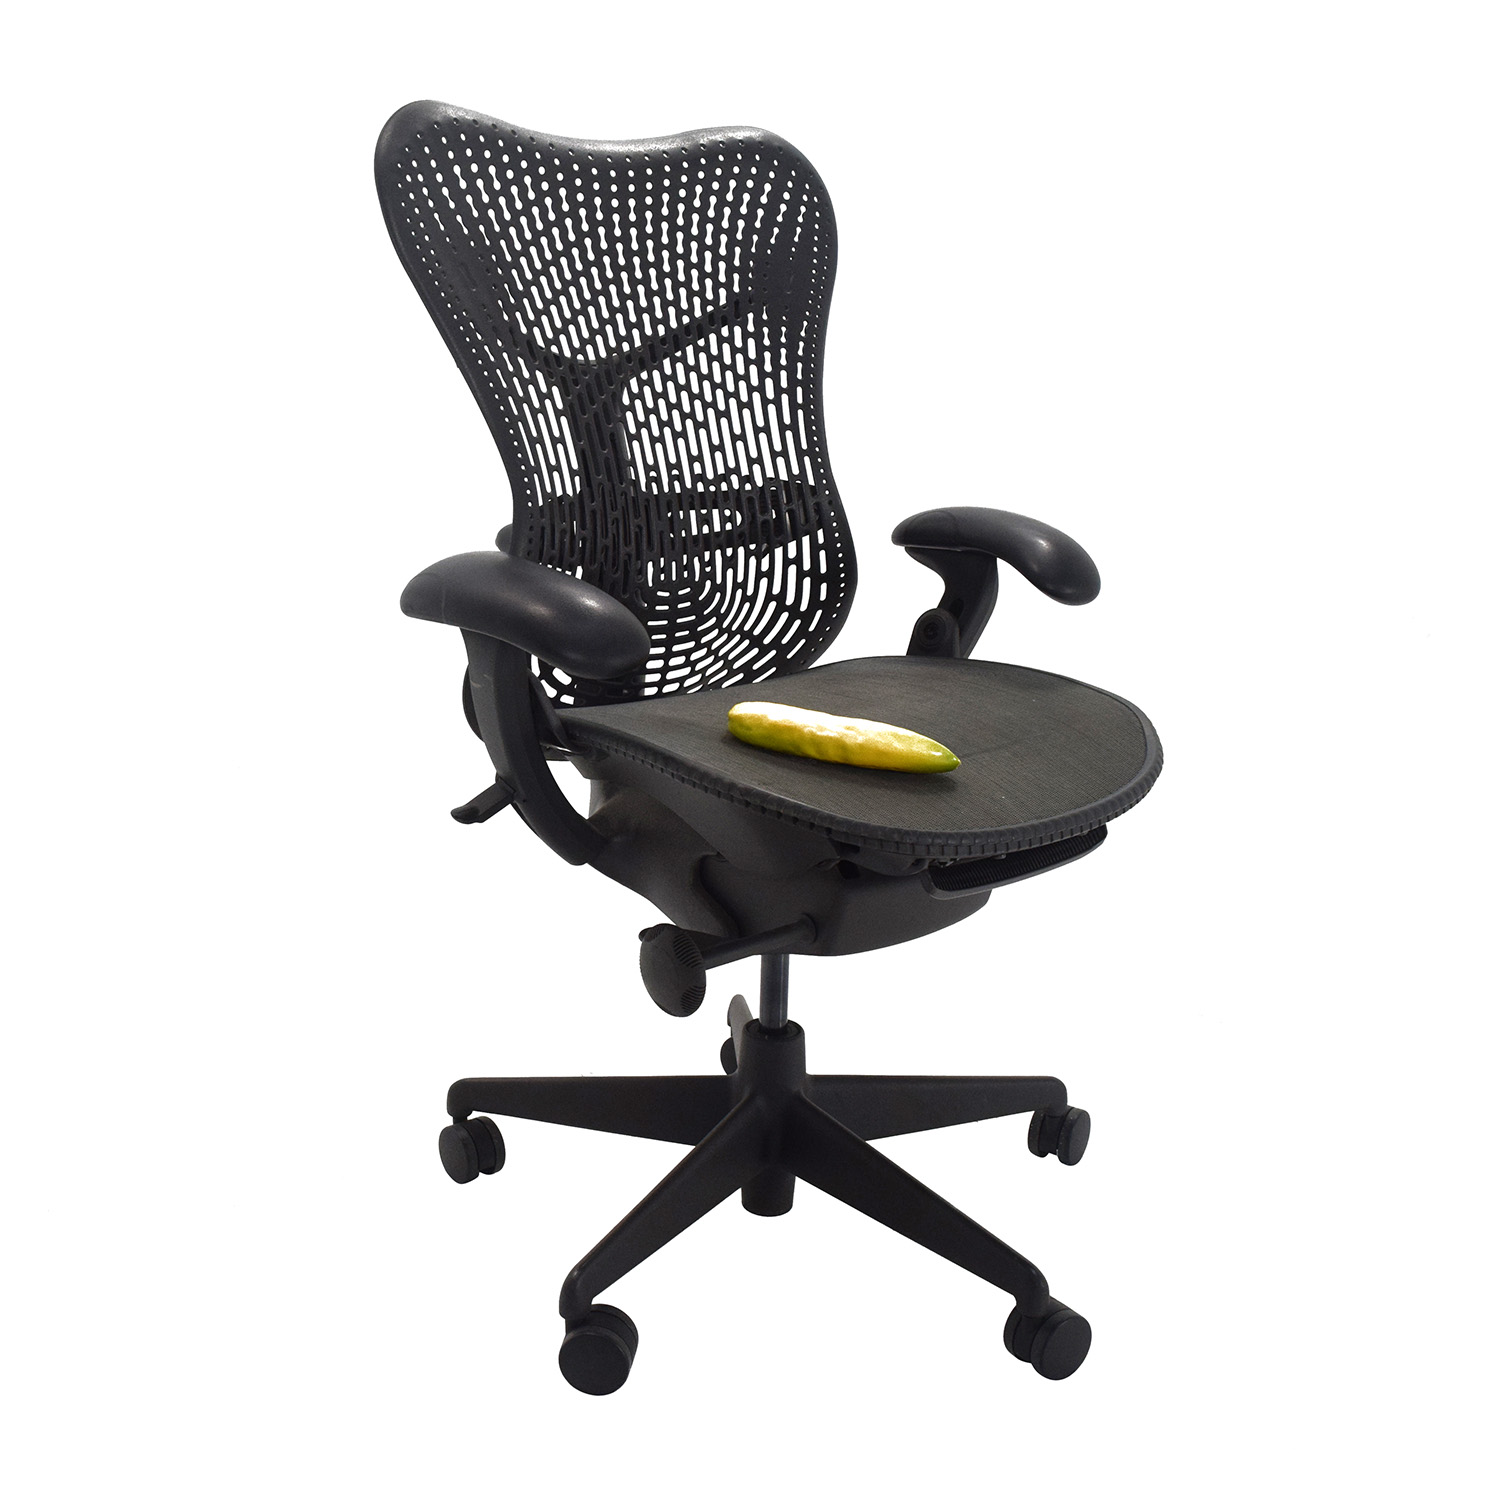 86% OFF - Eco Ergonomic Office Chair / Chairs